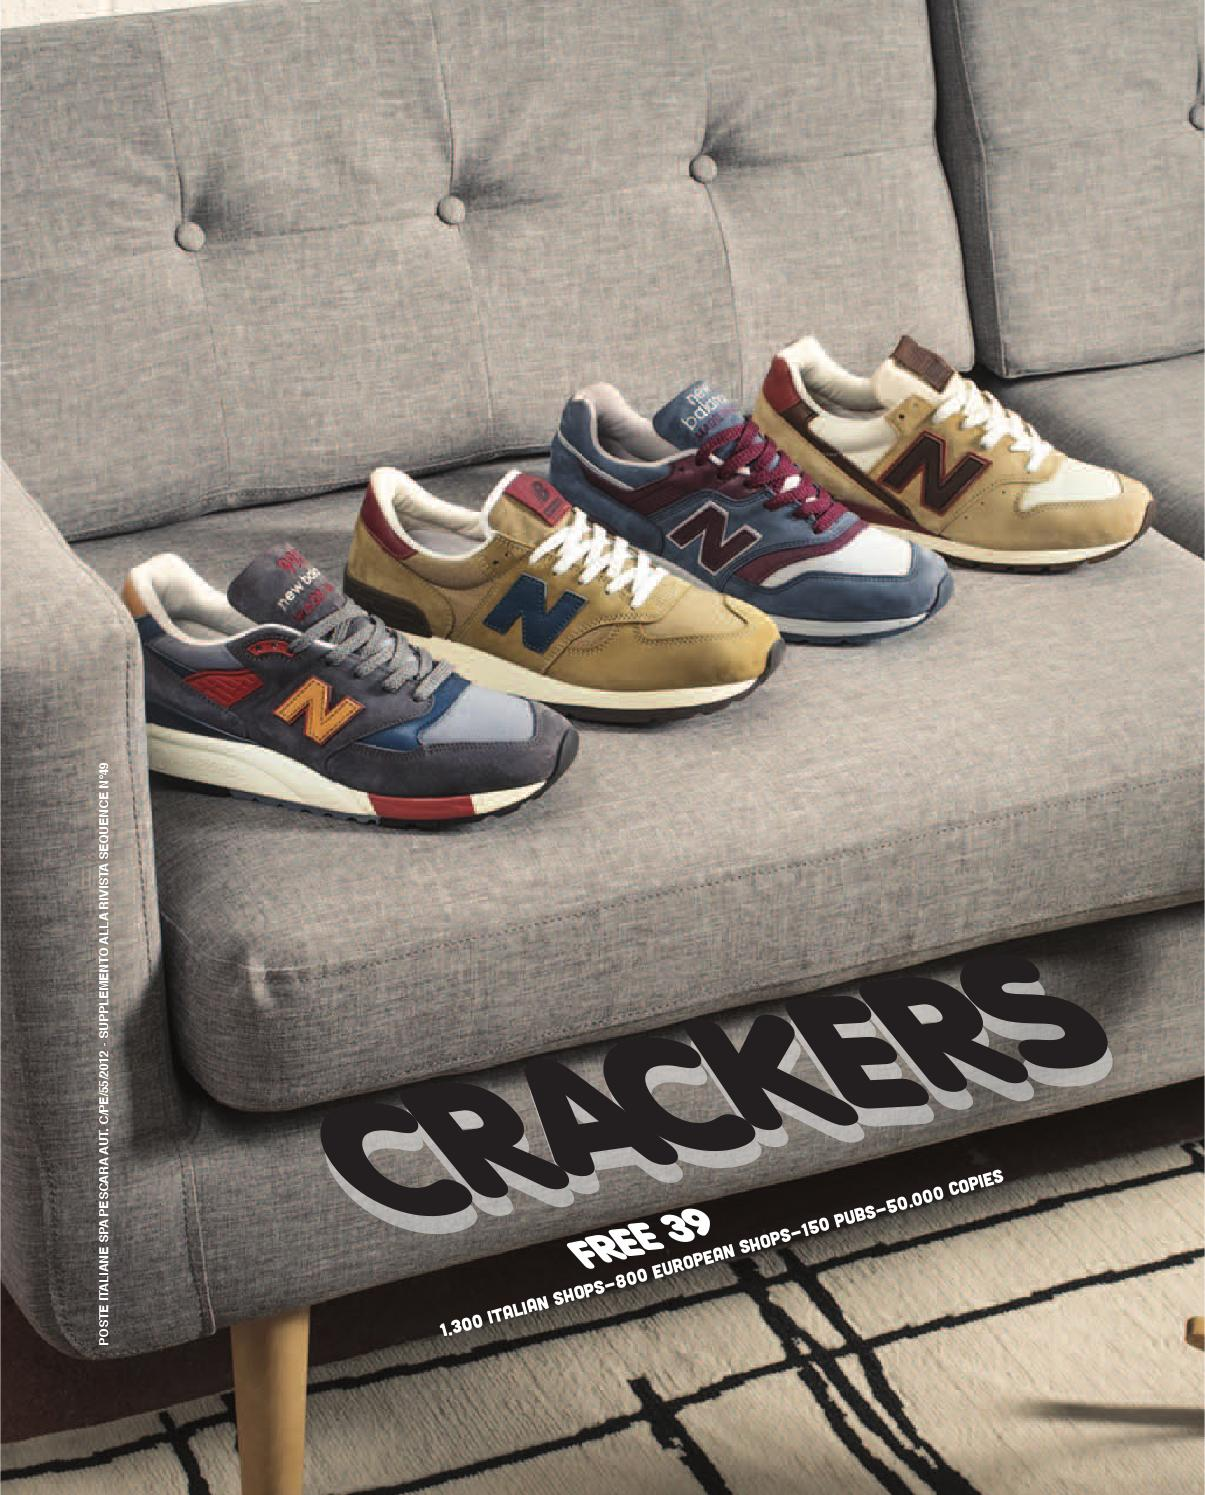 Crackers 39 by Tab Communication issuu